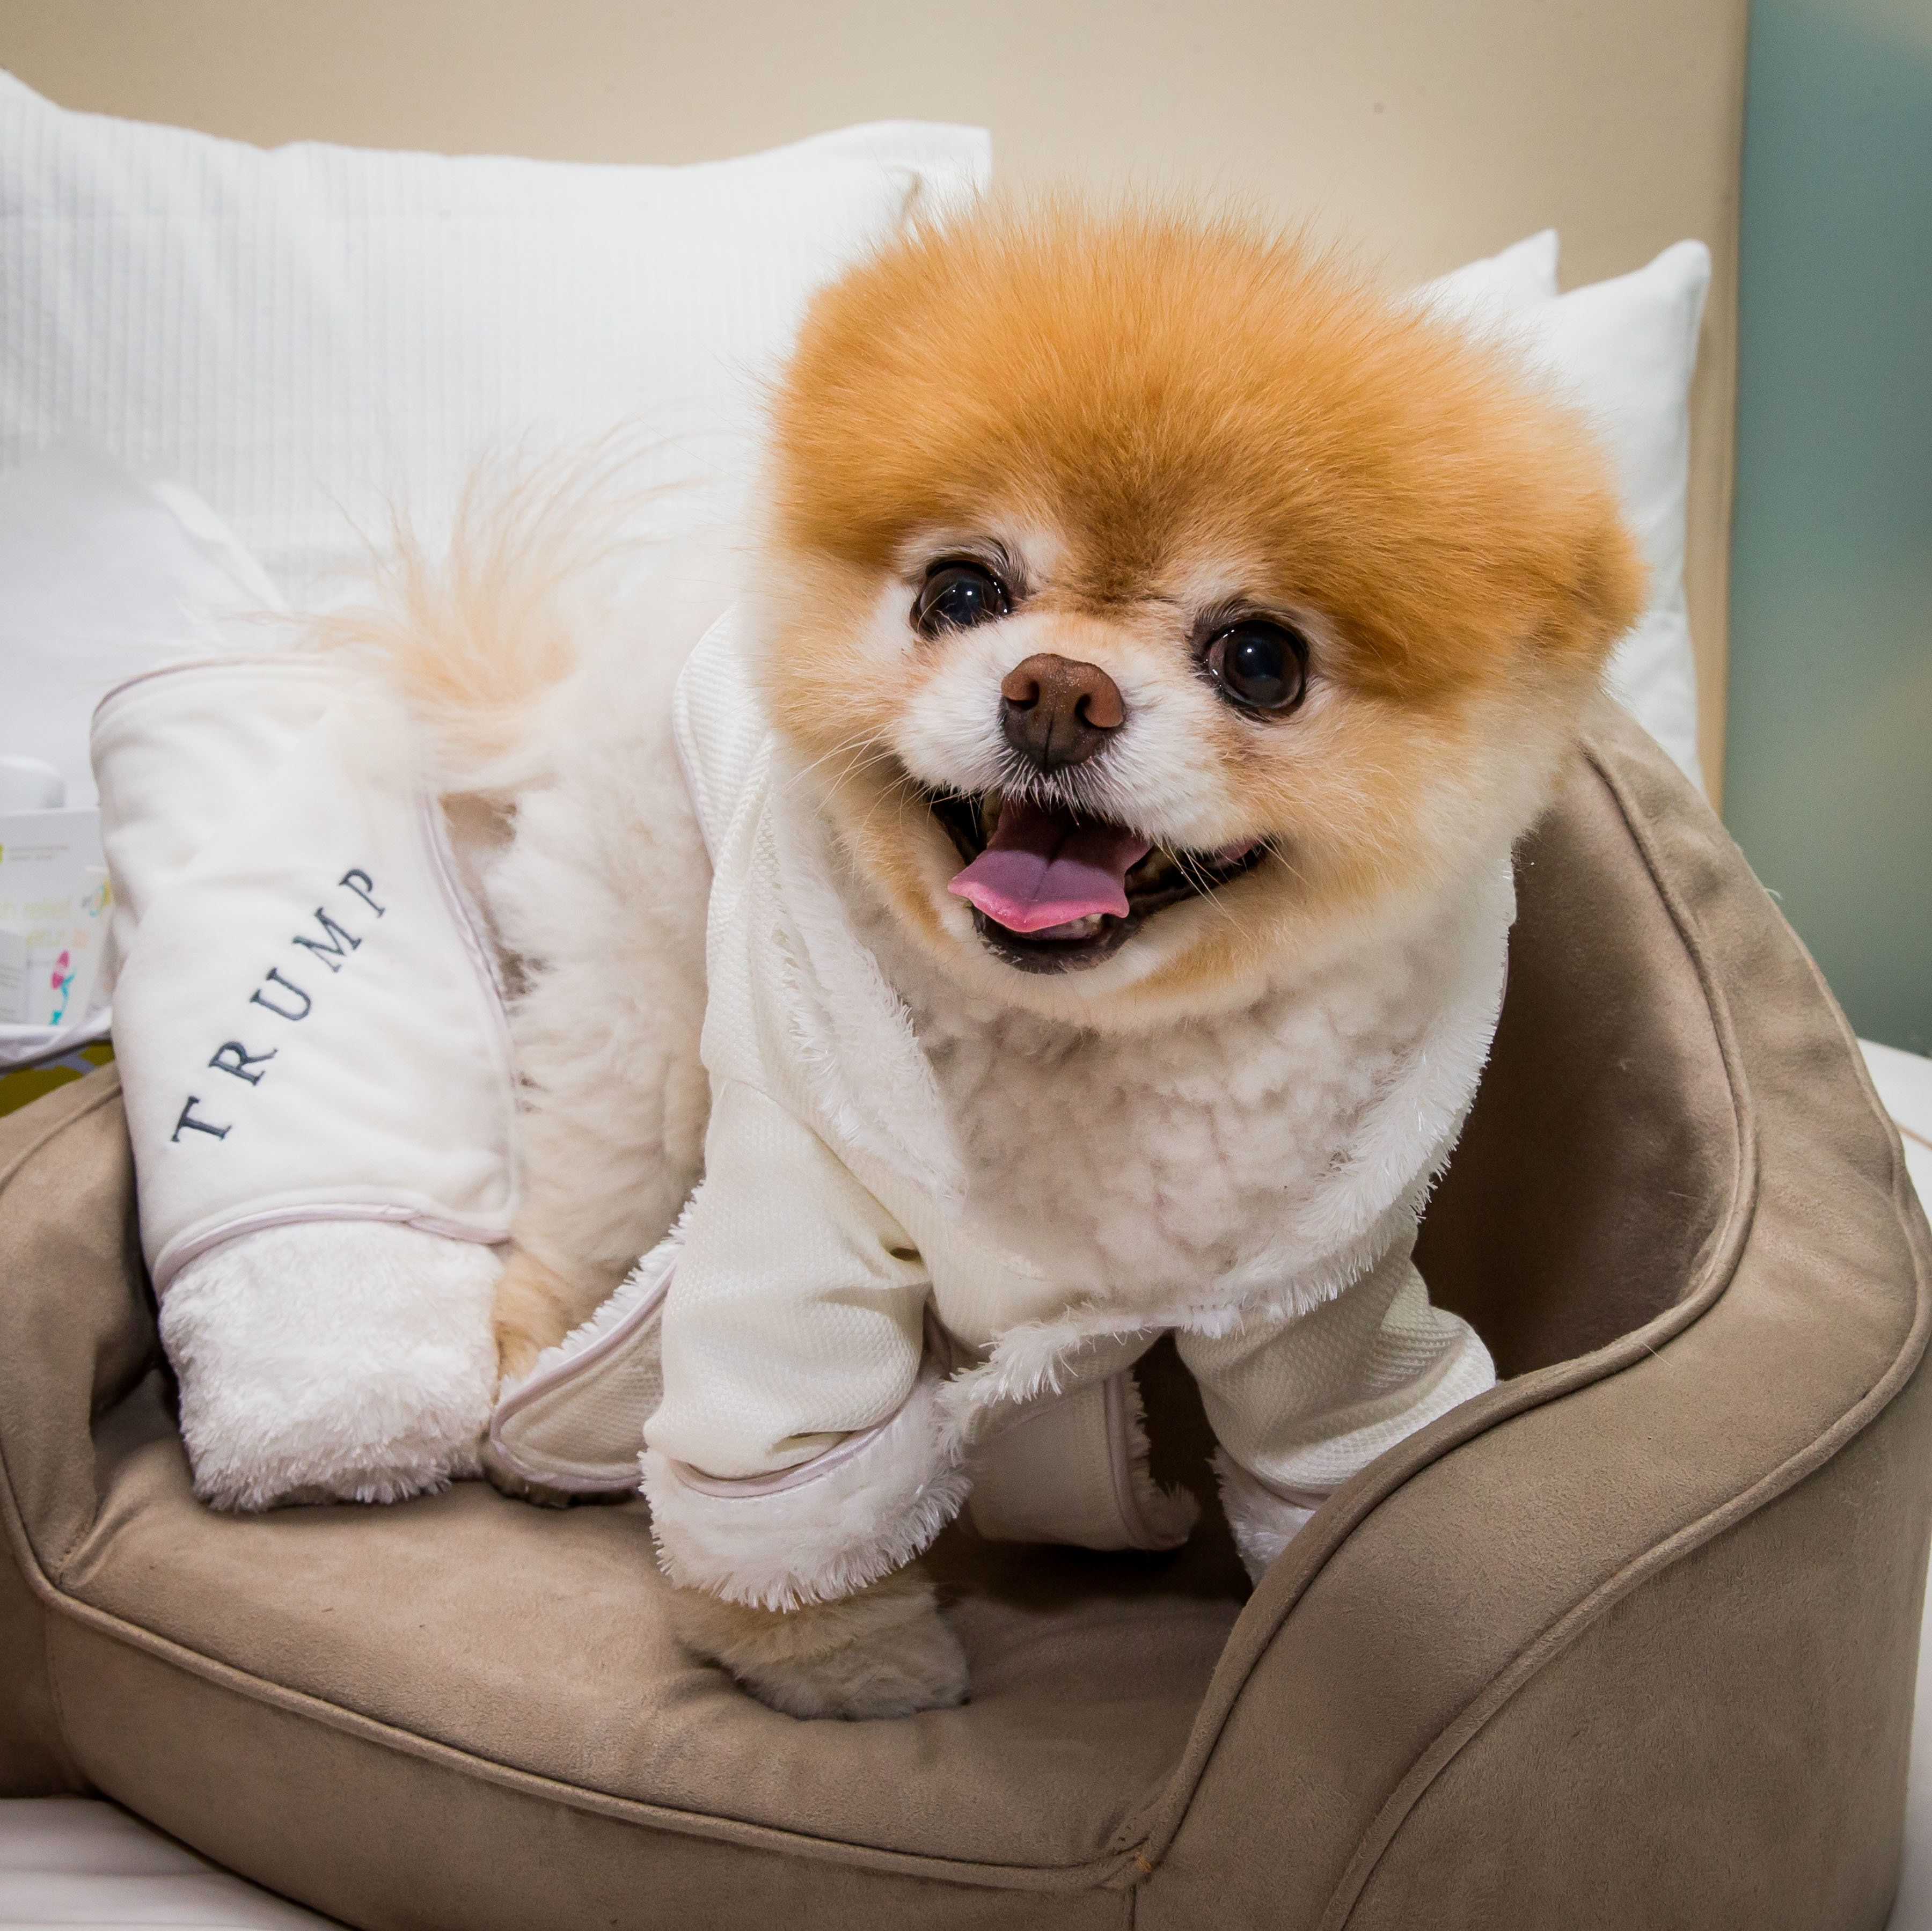 Westlake Legal Group 5c4344752400003801486921 Fans Mourn The Death Of Boo, Pomeranian Known As 'World's Cutest Dog'